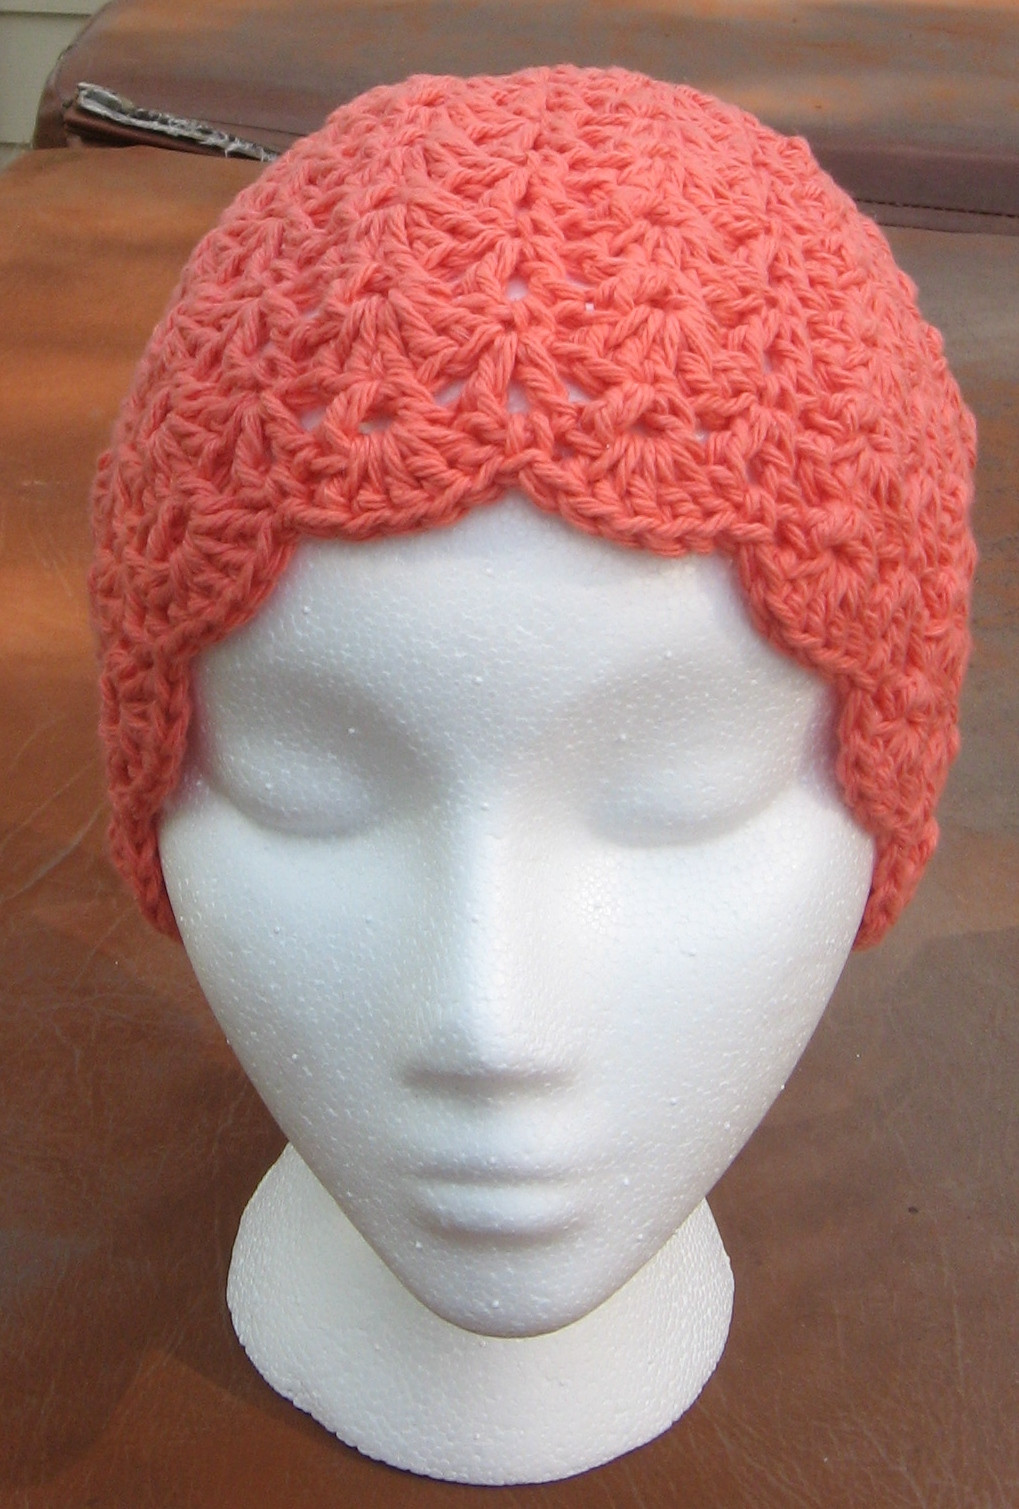 Hat Patterns New Crochet Projects Chemo Hats Set 1 Of Luxury 49 Pictures Hat Patterns